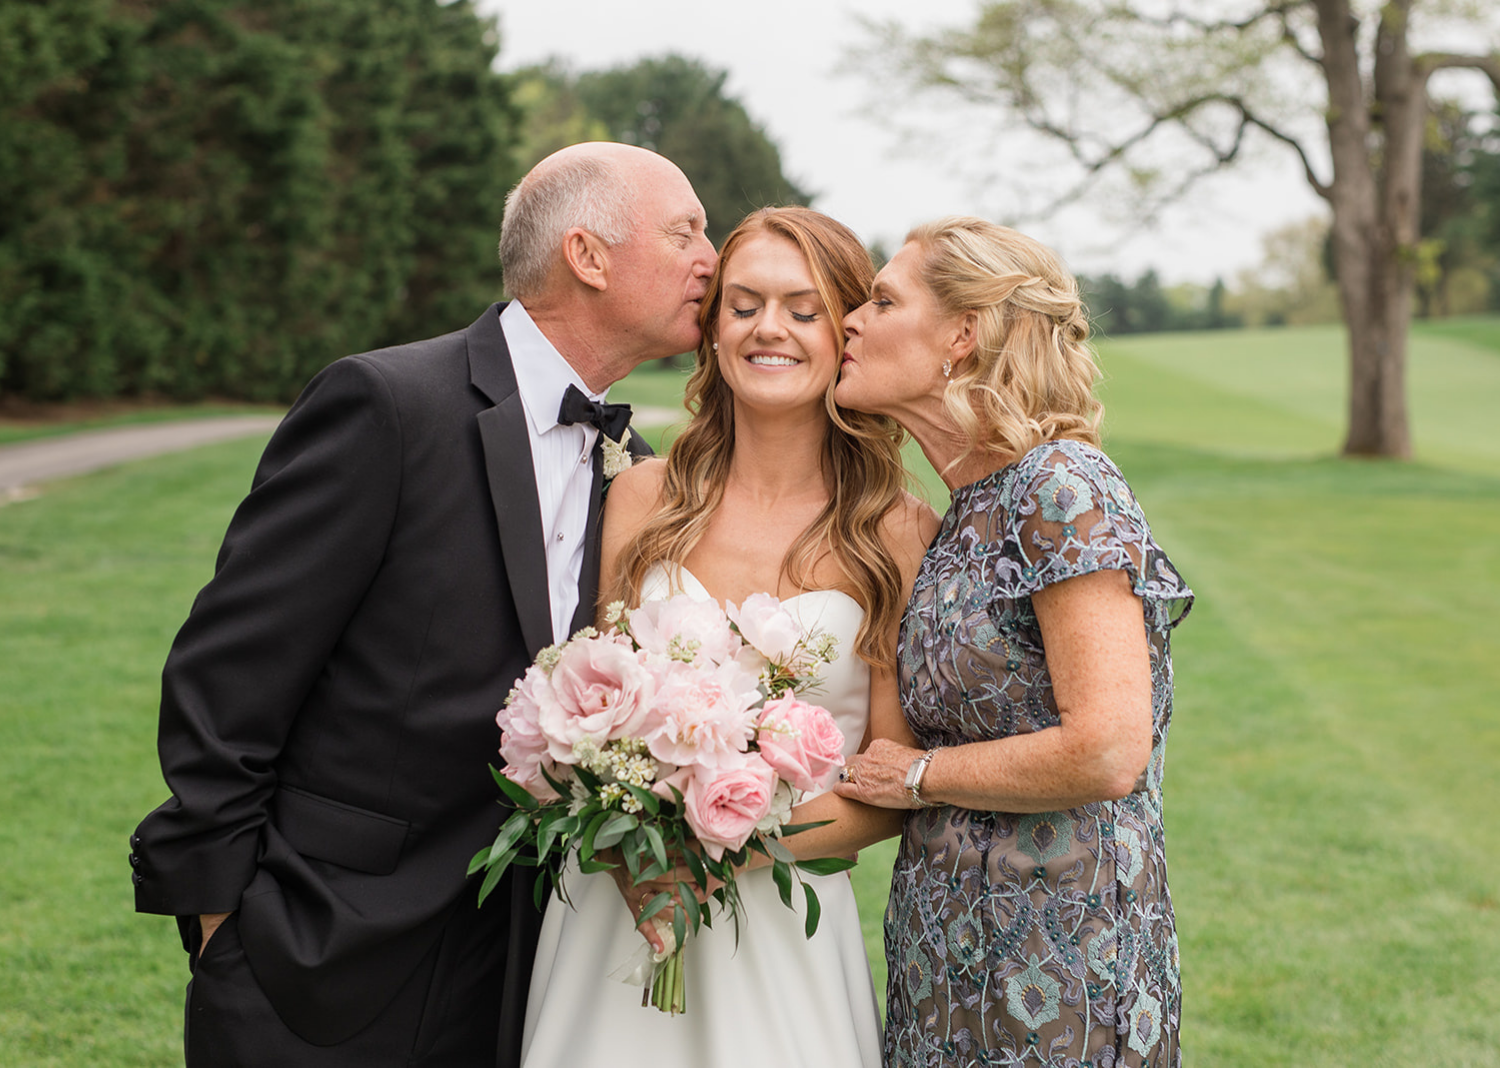 mother and father of the bride give bride a kiss on the cheek